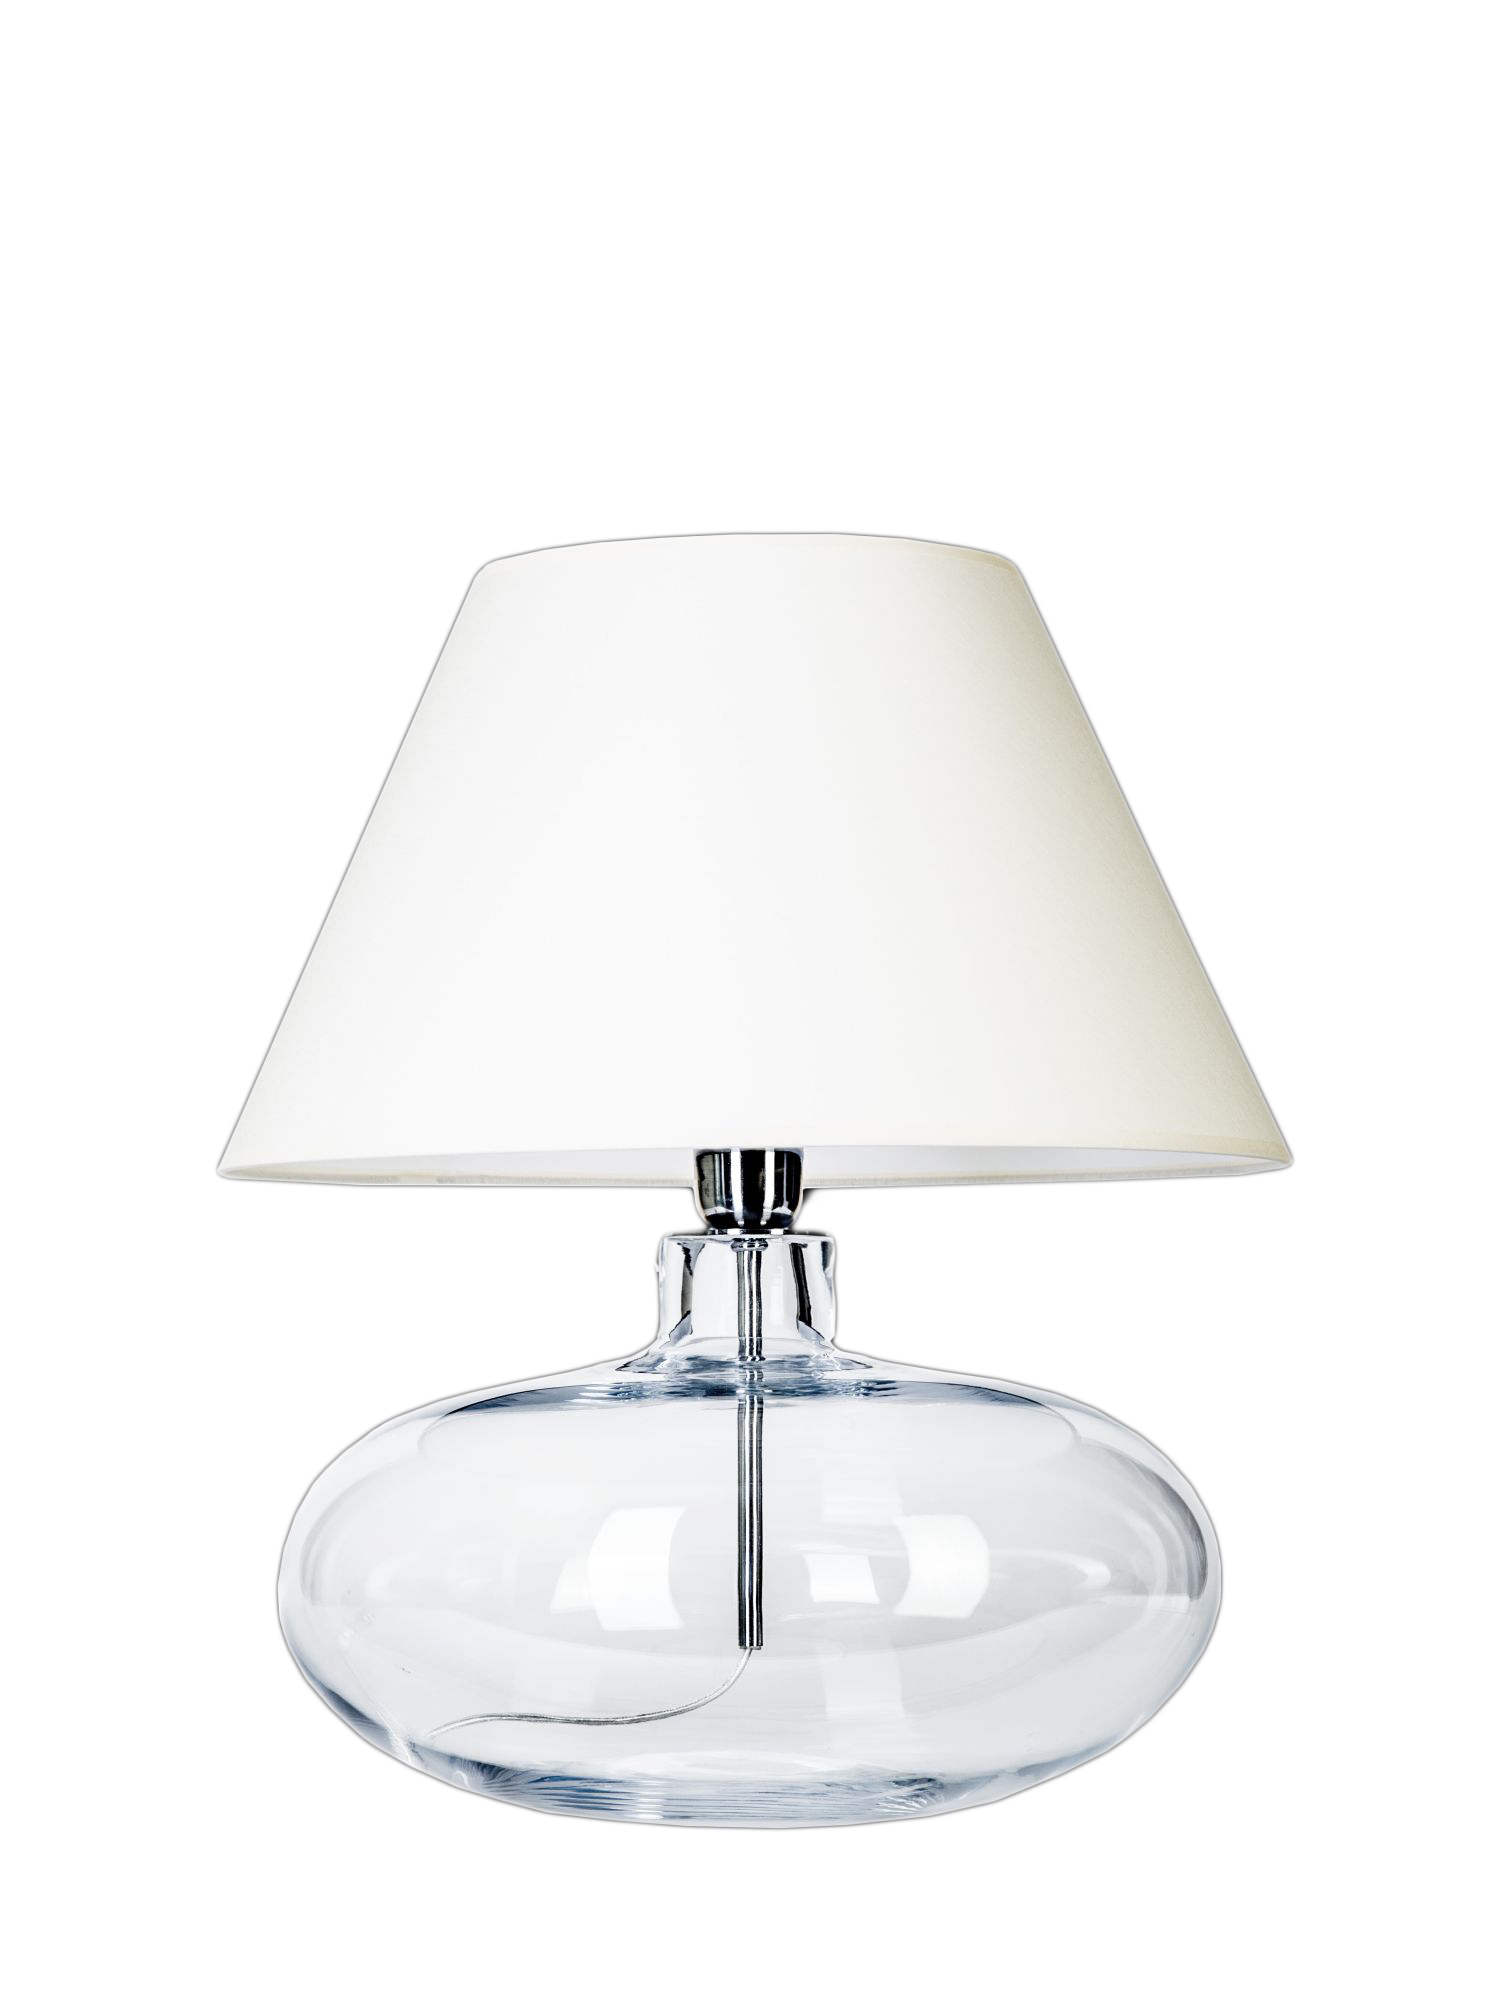 Large glass table lamp arehn large glass table lamp mozeypictures Gallery